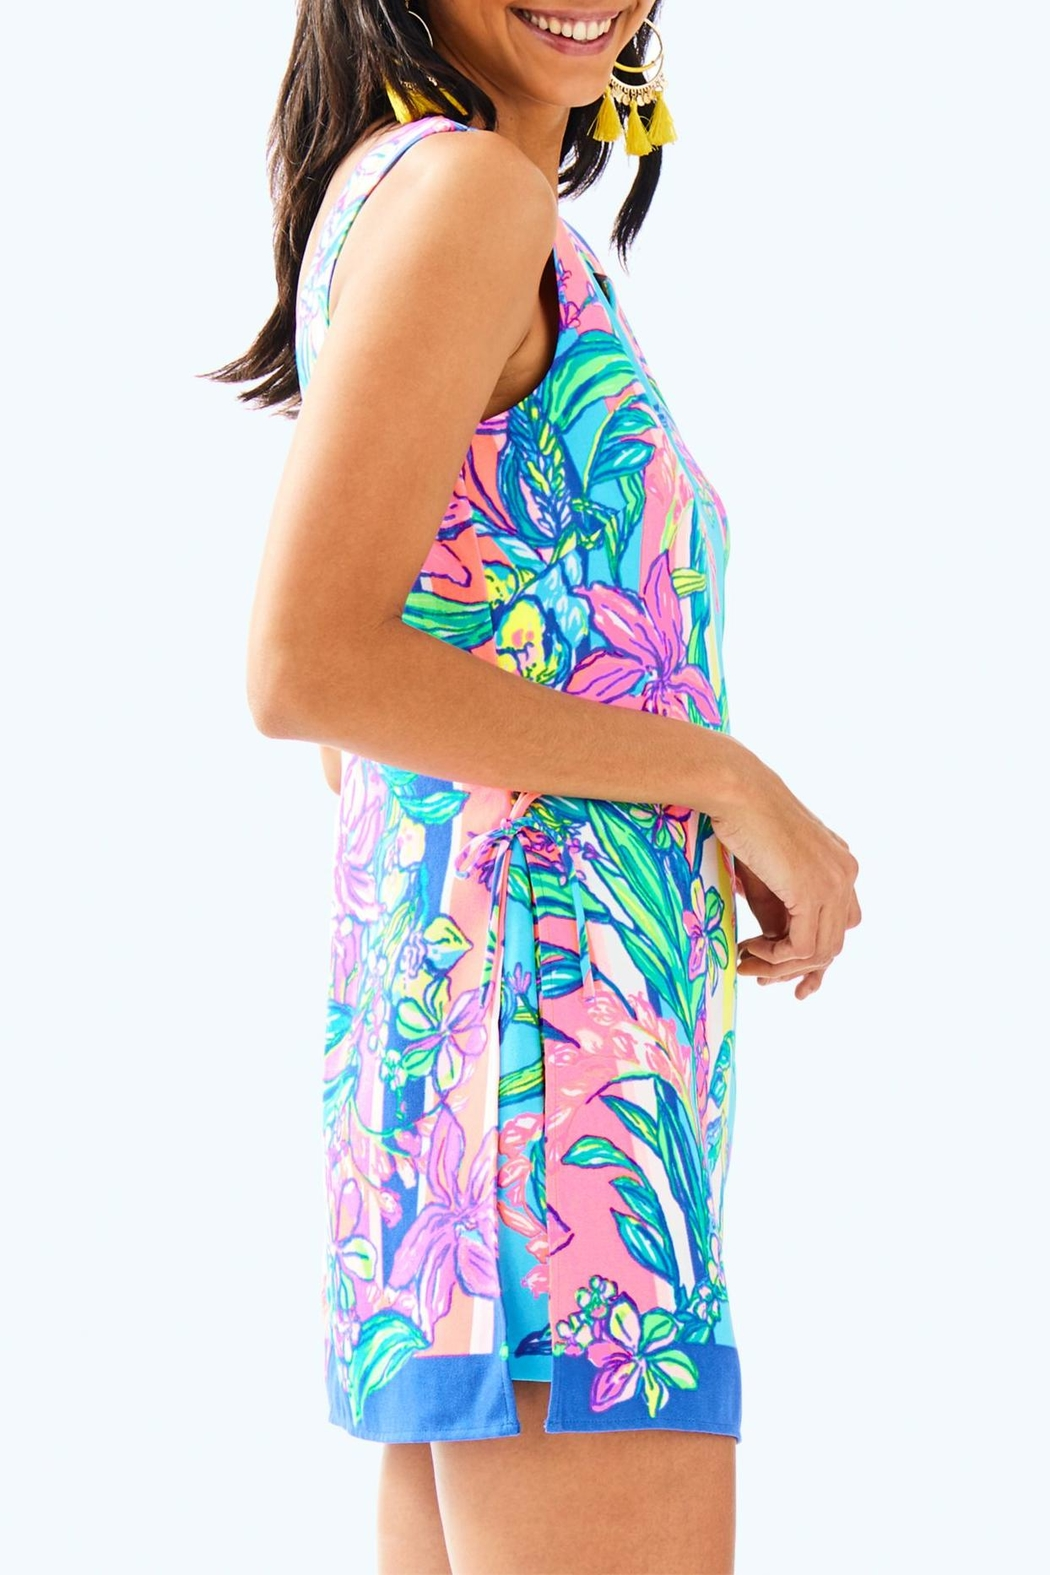 59a4e93d4b82 Lilly Pulitzer Donna Romper from Sandestin Golf and Beach Resort by ...